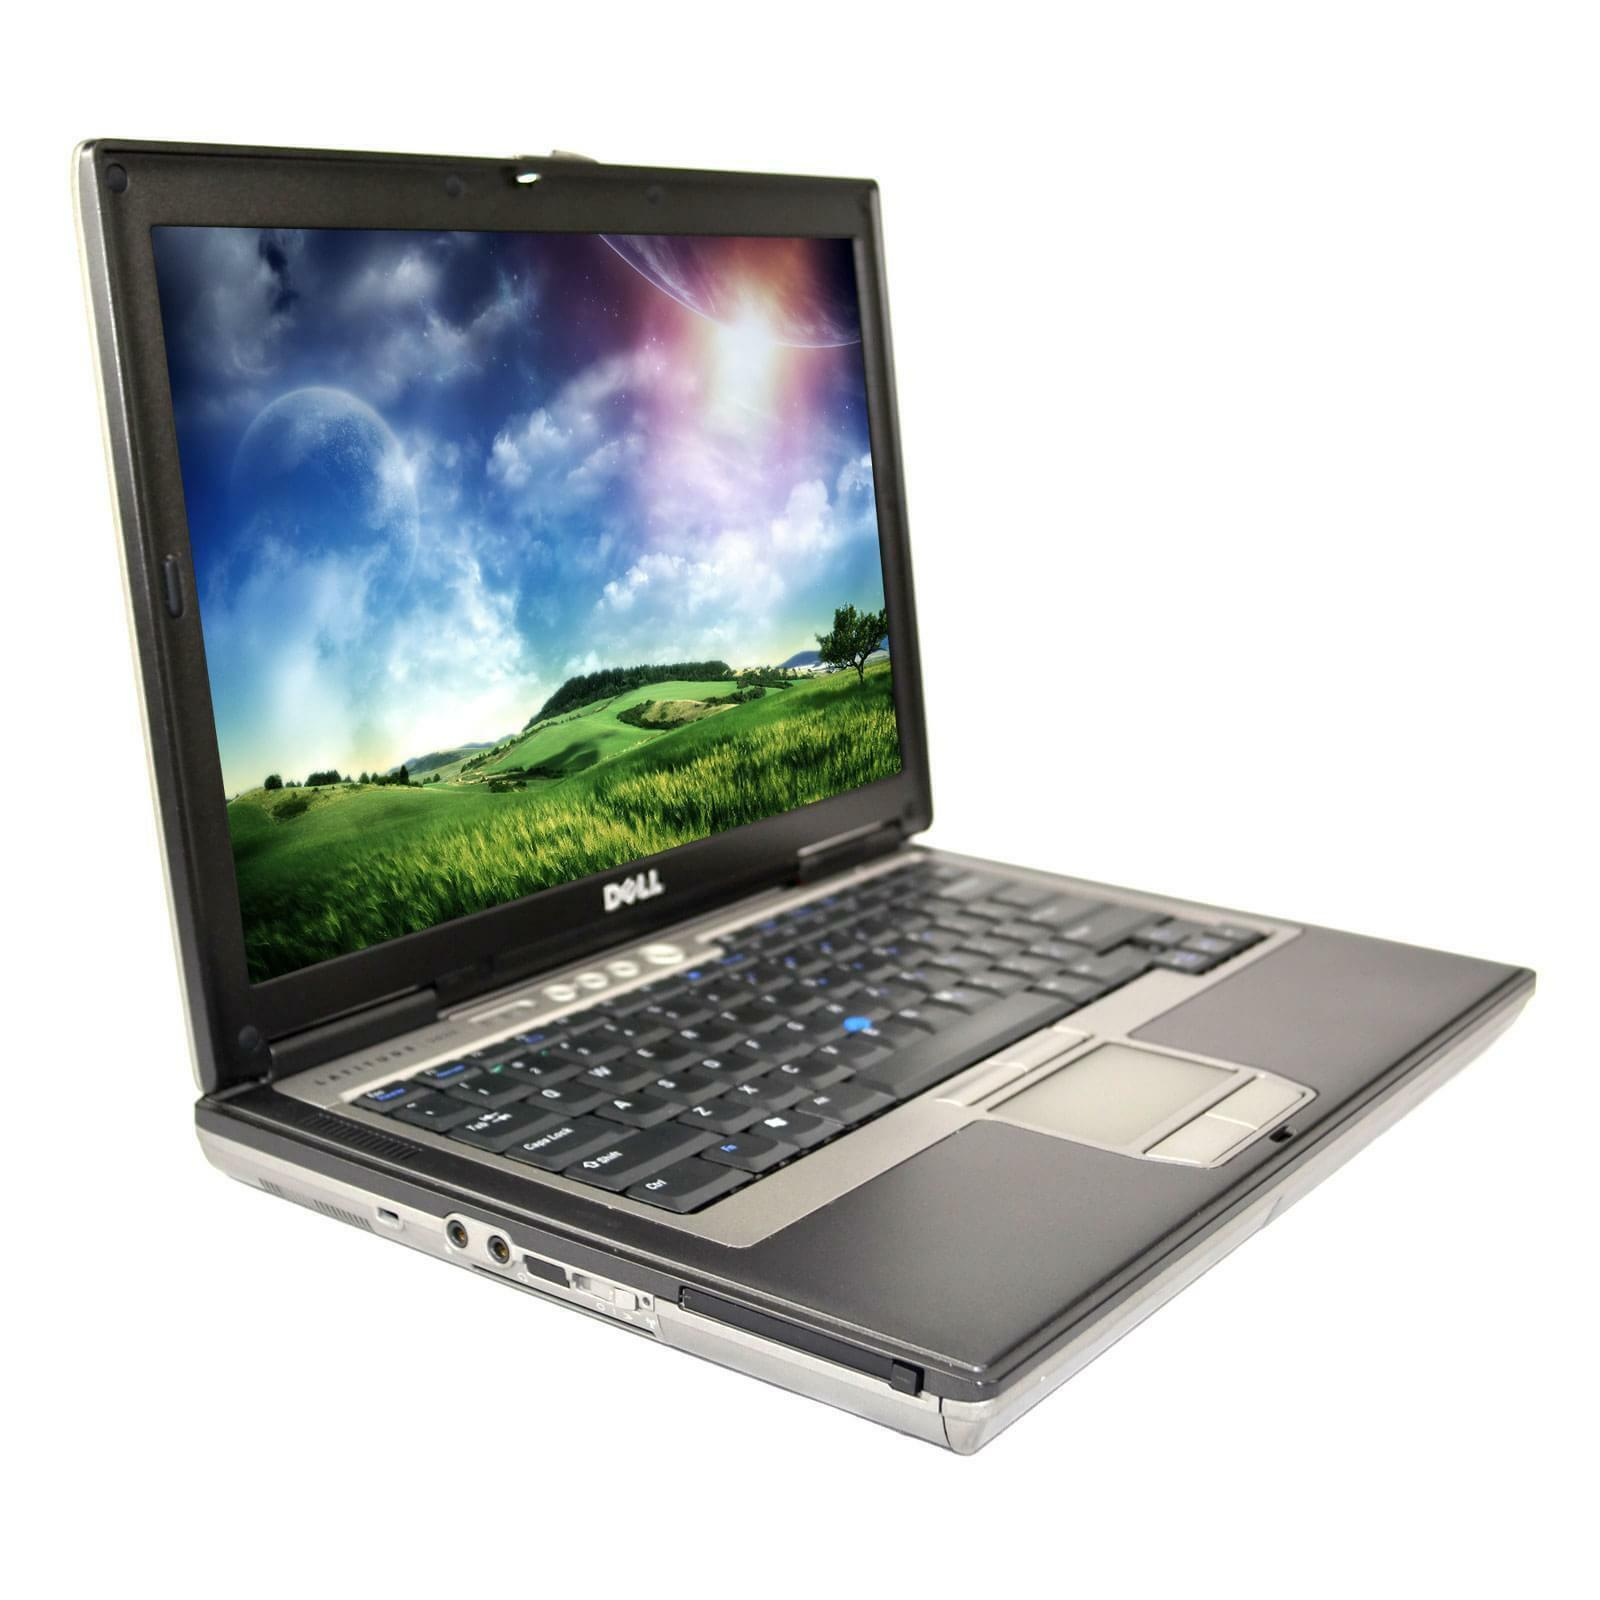 DELL Latitude Laptop windows 7 /Wireless/Microsoft Office Word Suite